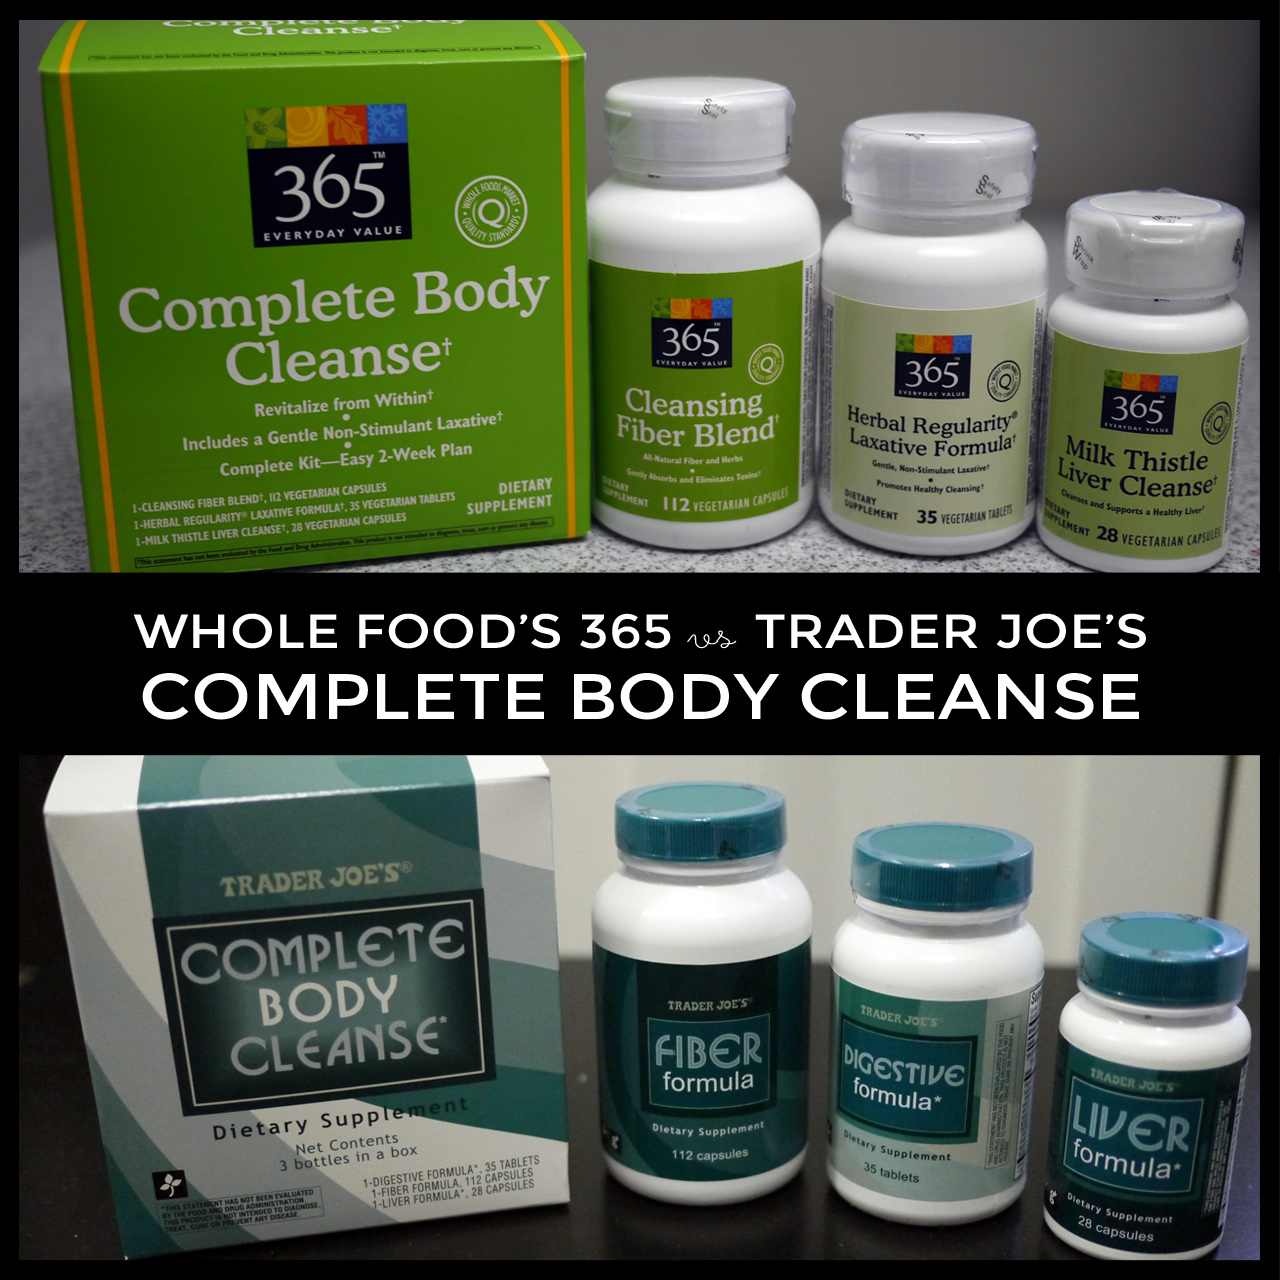 Complete Body Cleanse Whole Foods